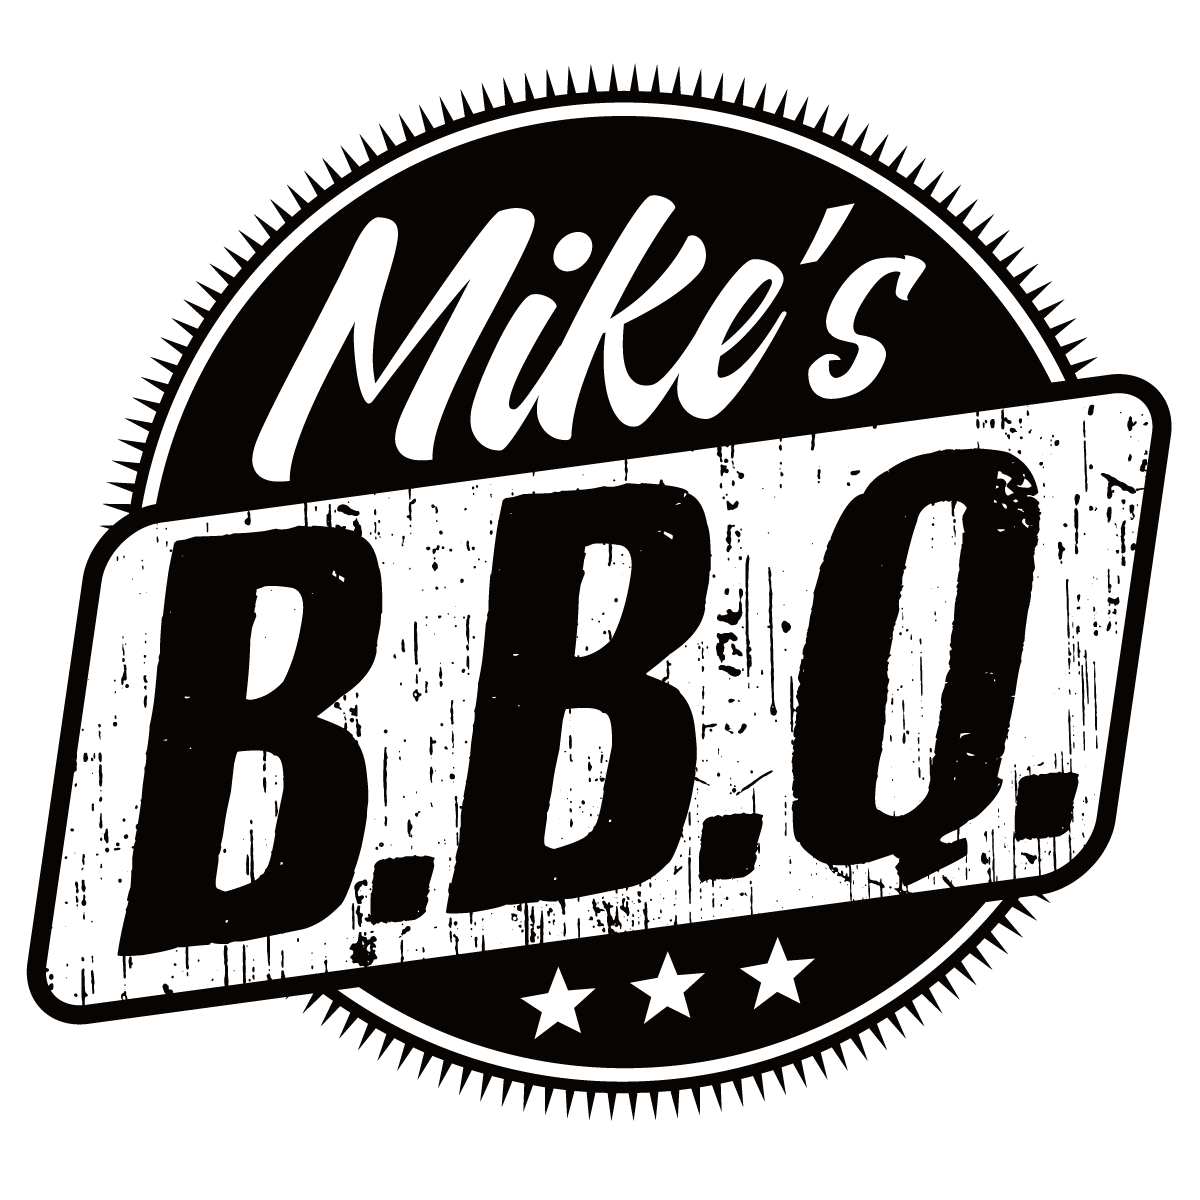 1200x1200 Mike's Bbq South Philadelphia Philly!